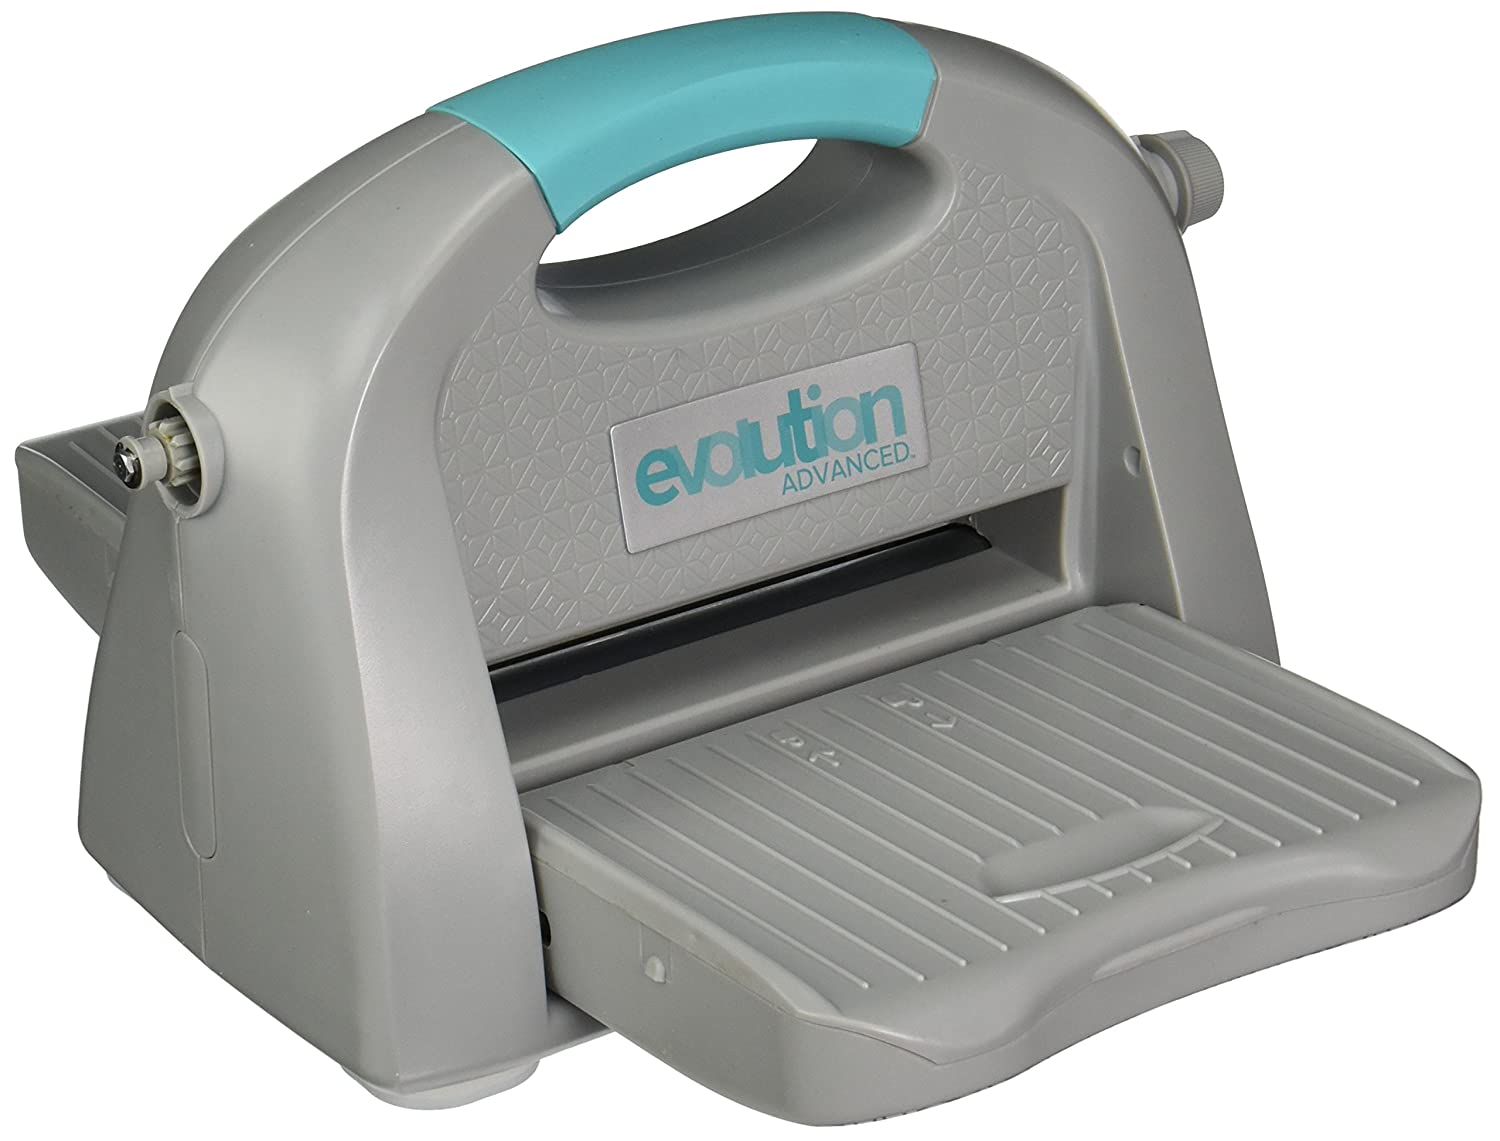 Amazon.com: Evolution Advanced Die-Cutting and Embossing Machine ...